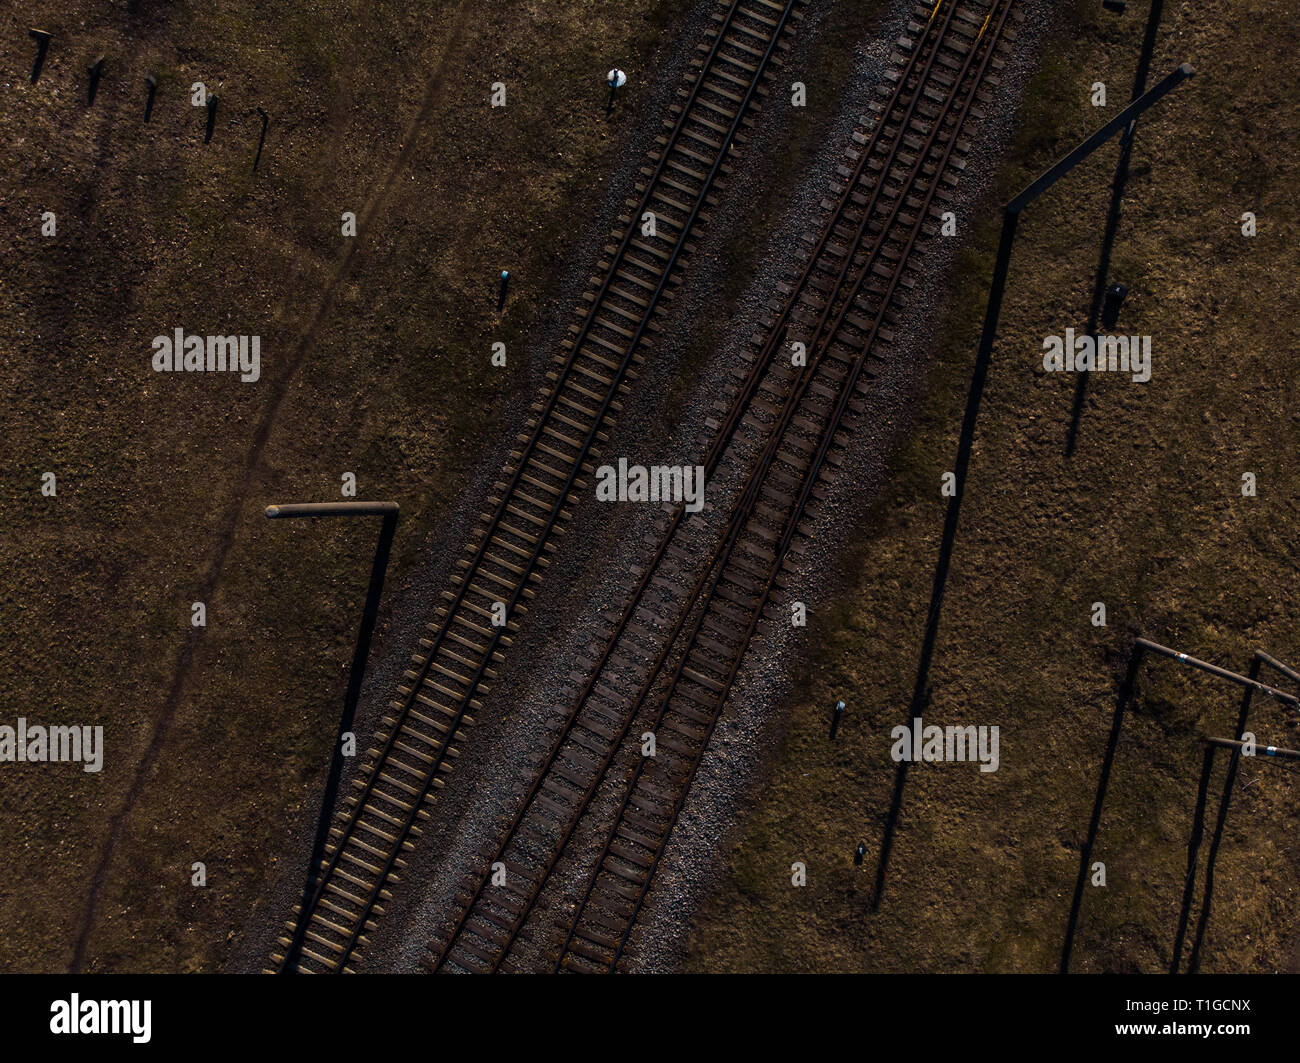 Top aerial view of some railraod tracks -Texture isolated shot of railway - Stock Image